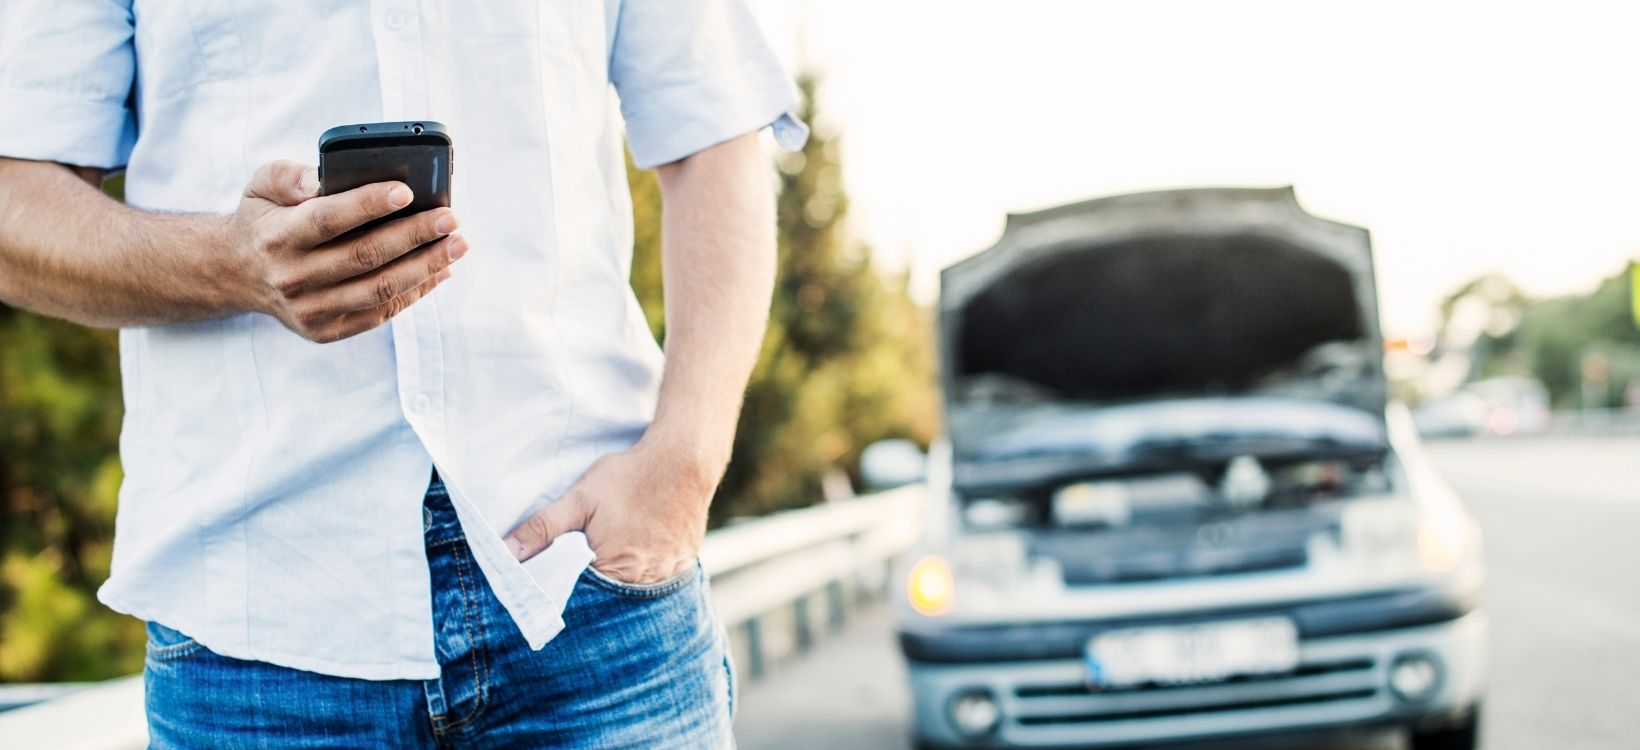 If you need roadside assistance to get you running again, make sure you're in a safe place before you take the time to call.